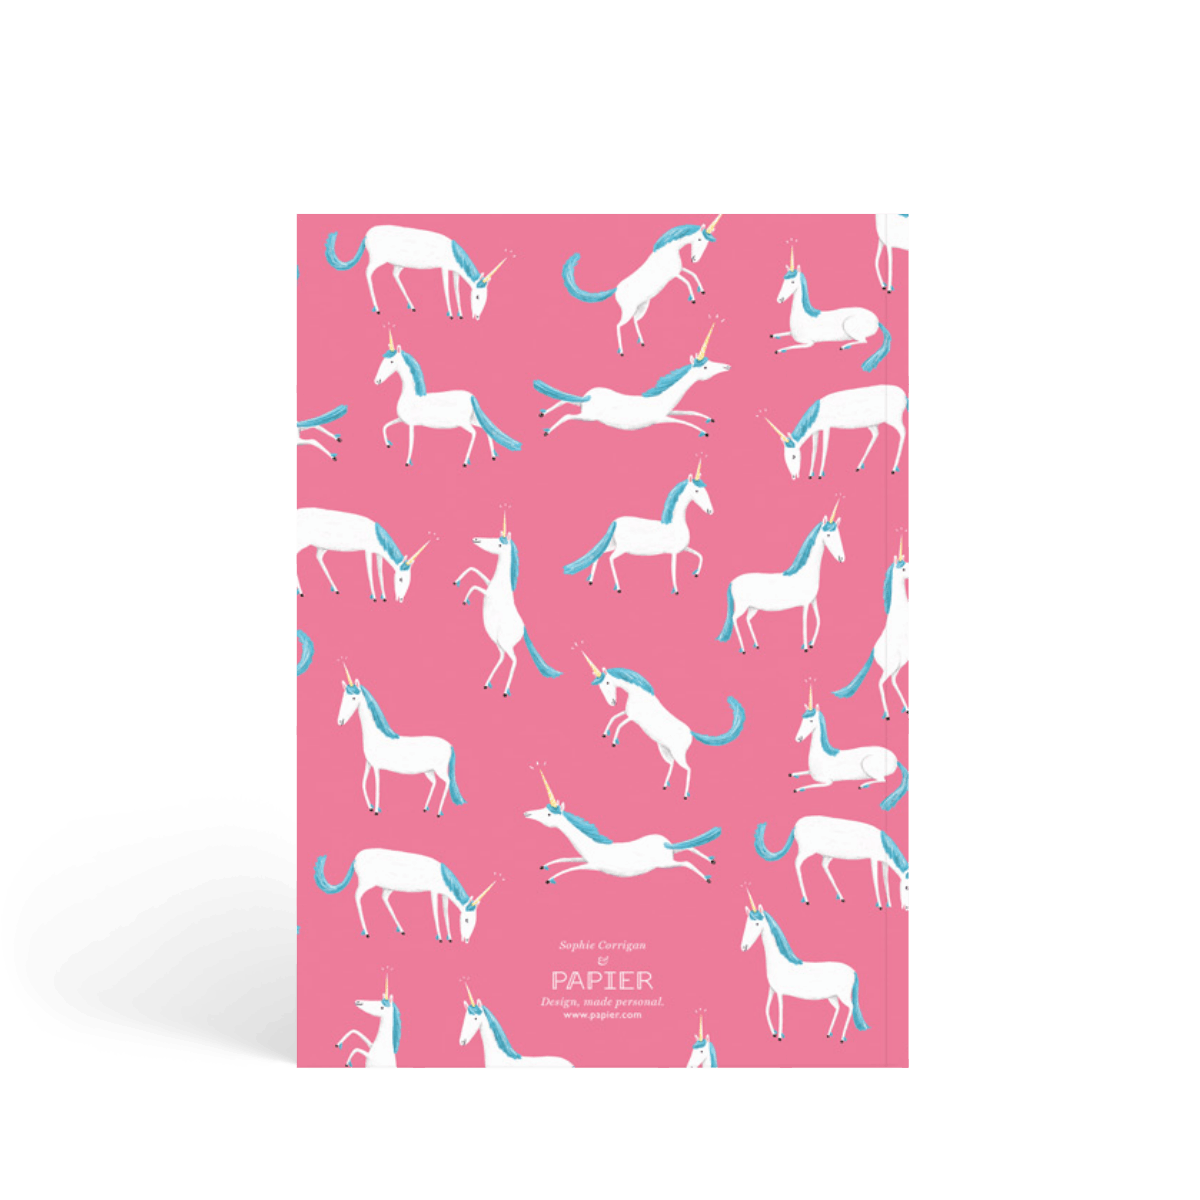 Https%3a%2f%2fwww.papier.com%2fproduct image%2f42062%2f5%2fpink unicorn 10729 arriere 1532363833.png?ixlib=rb 1.1